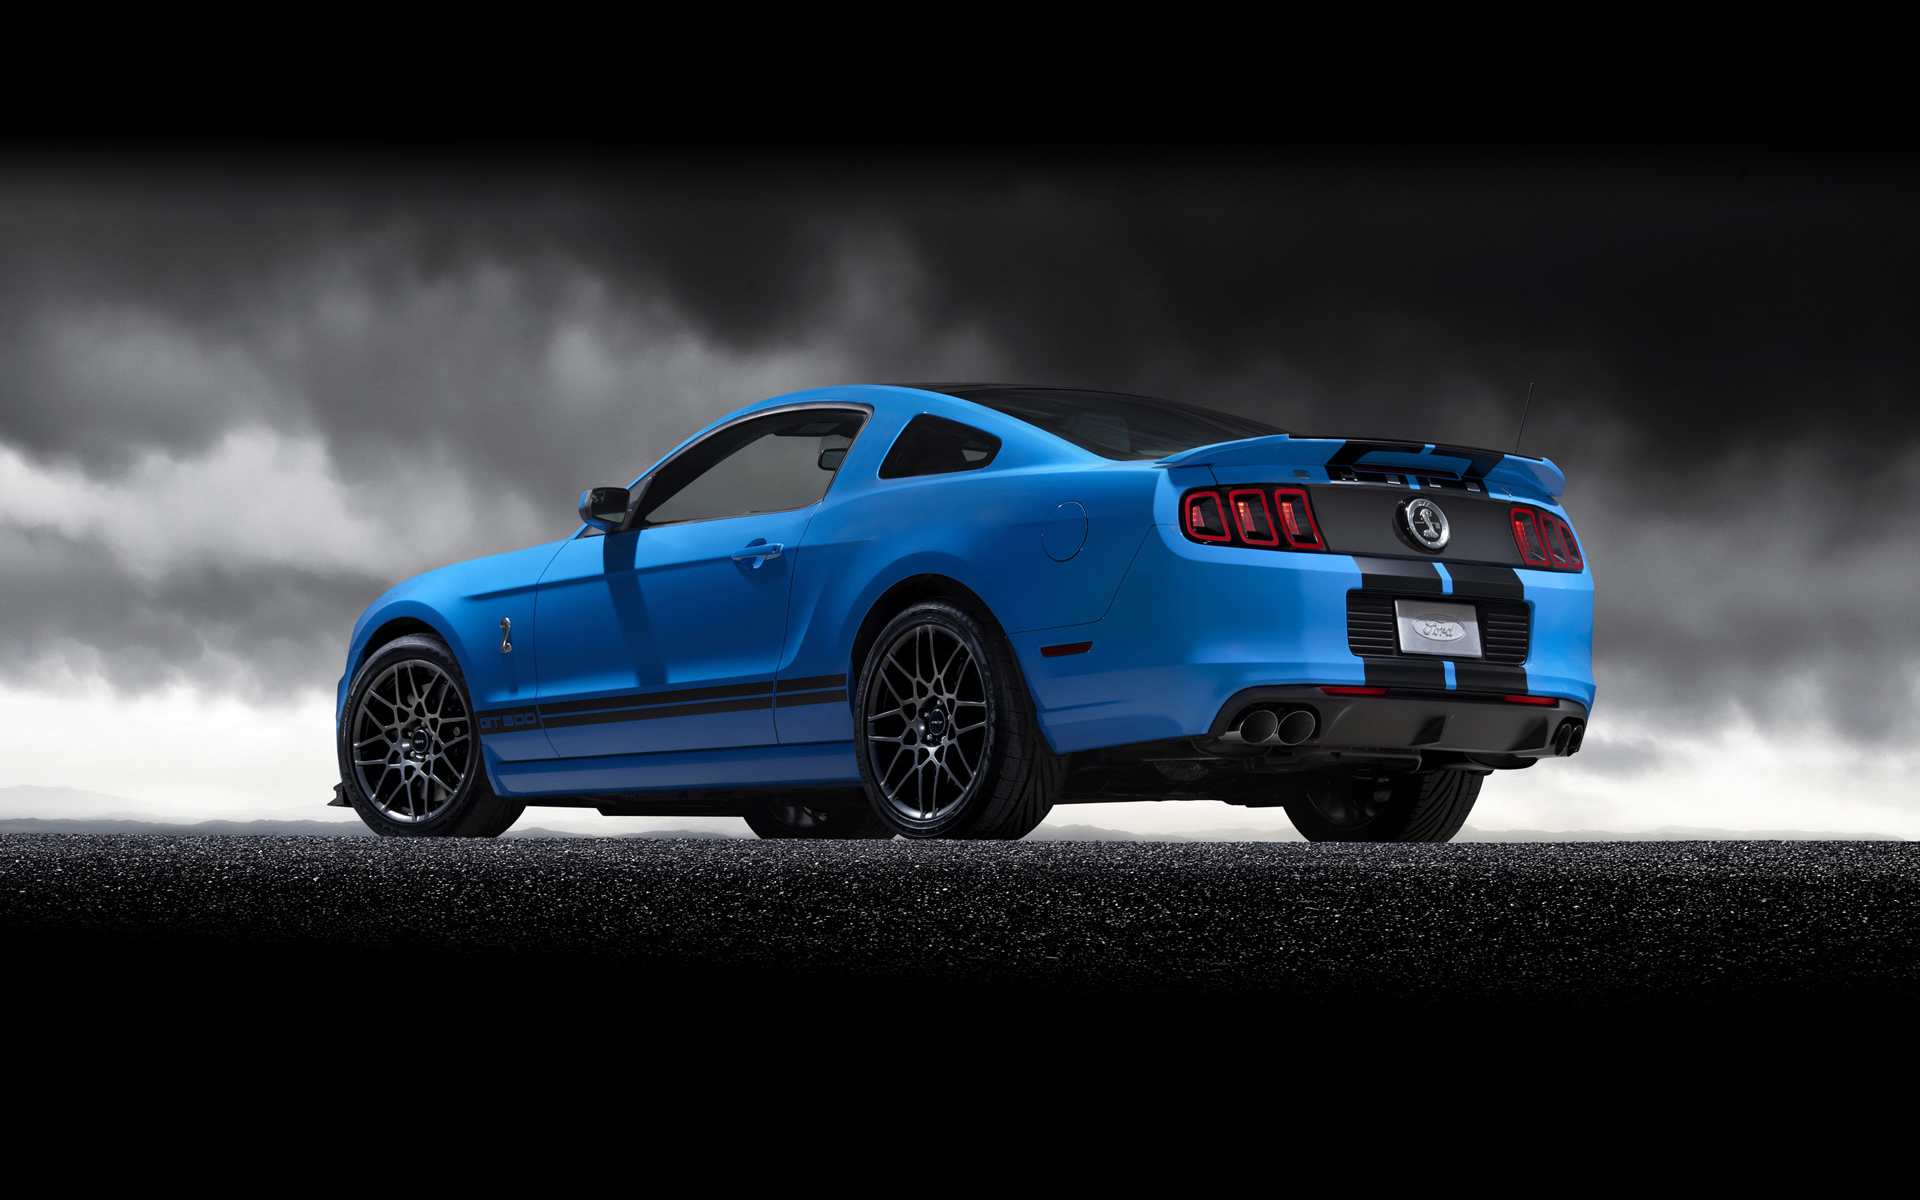 2013 Ford Shelby GT500 Super Cars HD Wallpapers 1920x1200